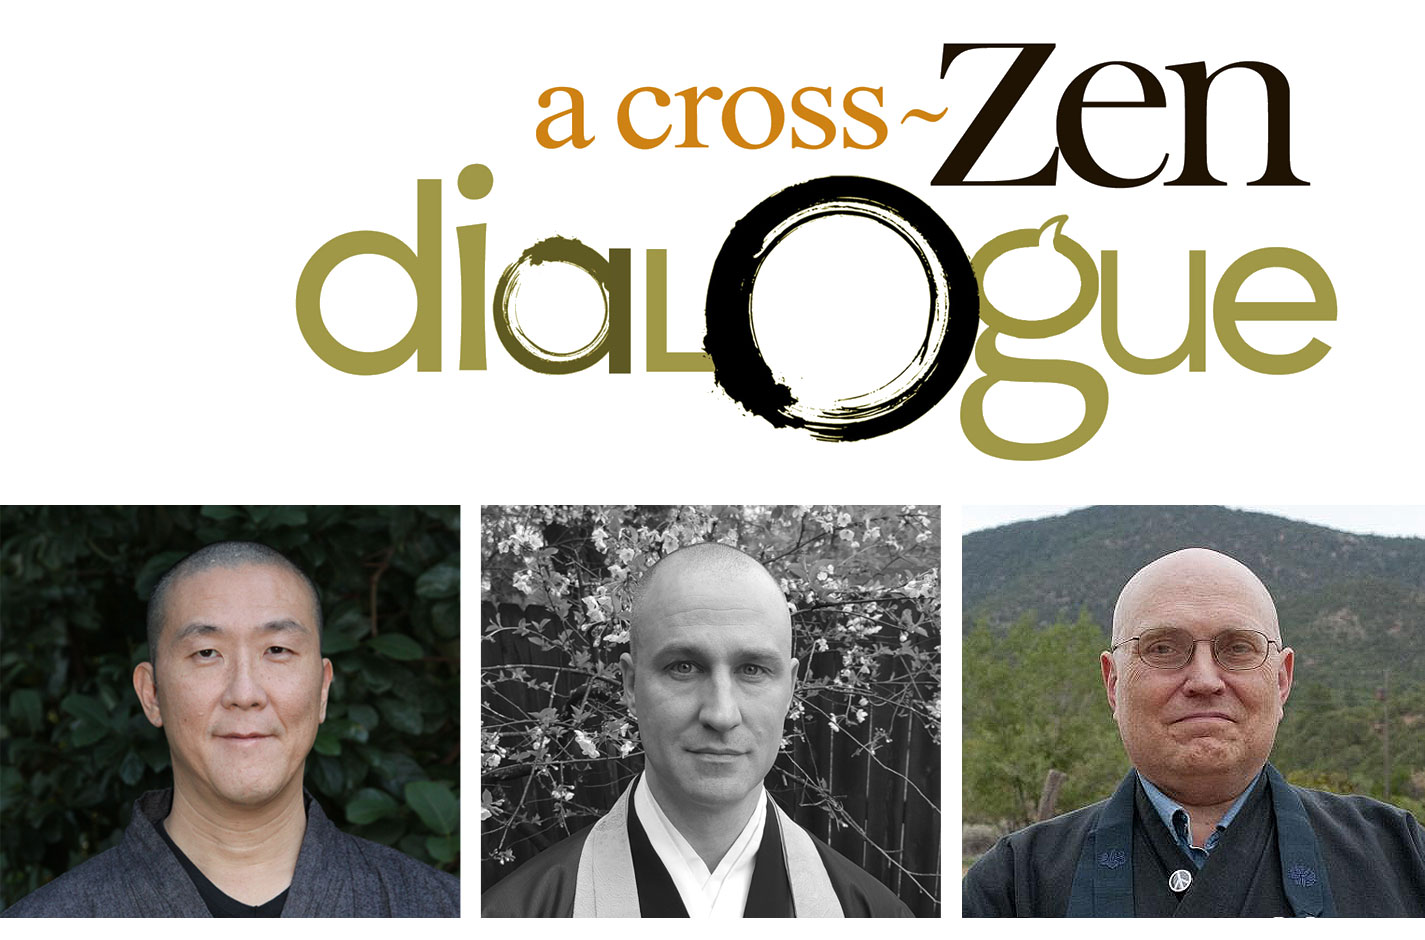 cross-zen dialogue